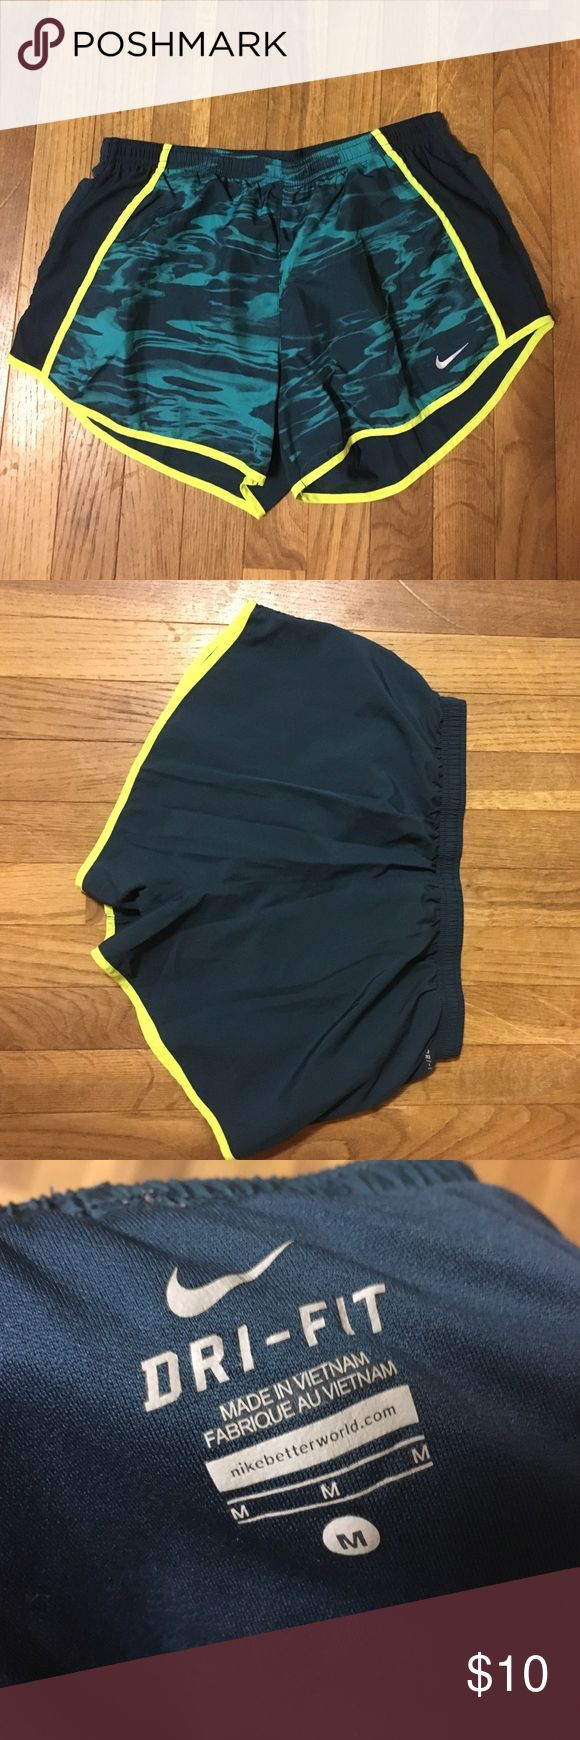 Nike dri fit shorts Teal/neon yellow. Never worn. Built in spandex/underwear Nike Shorts